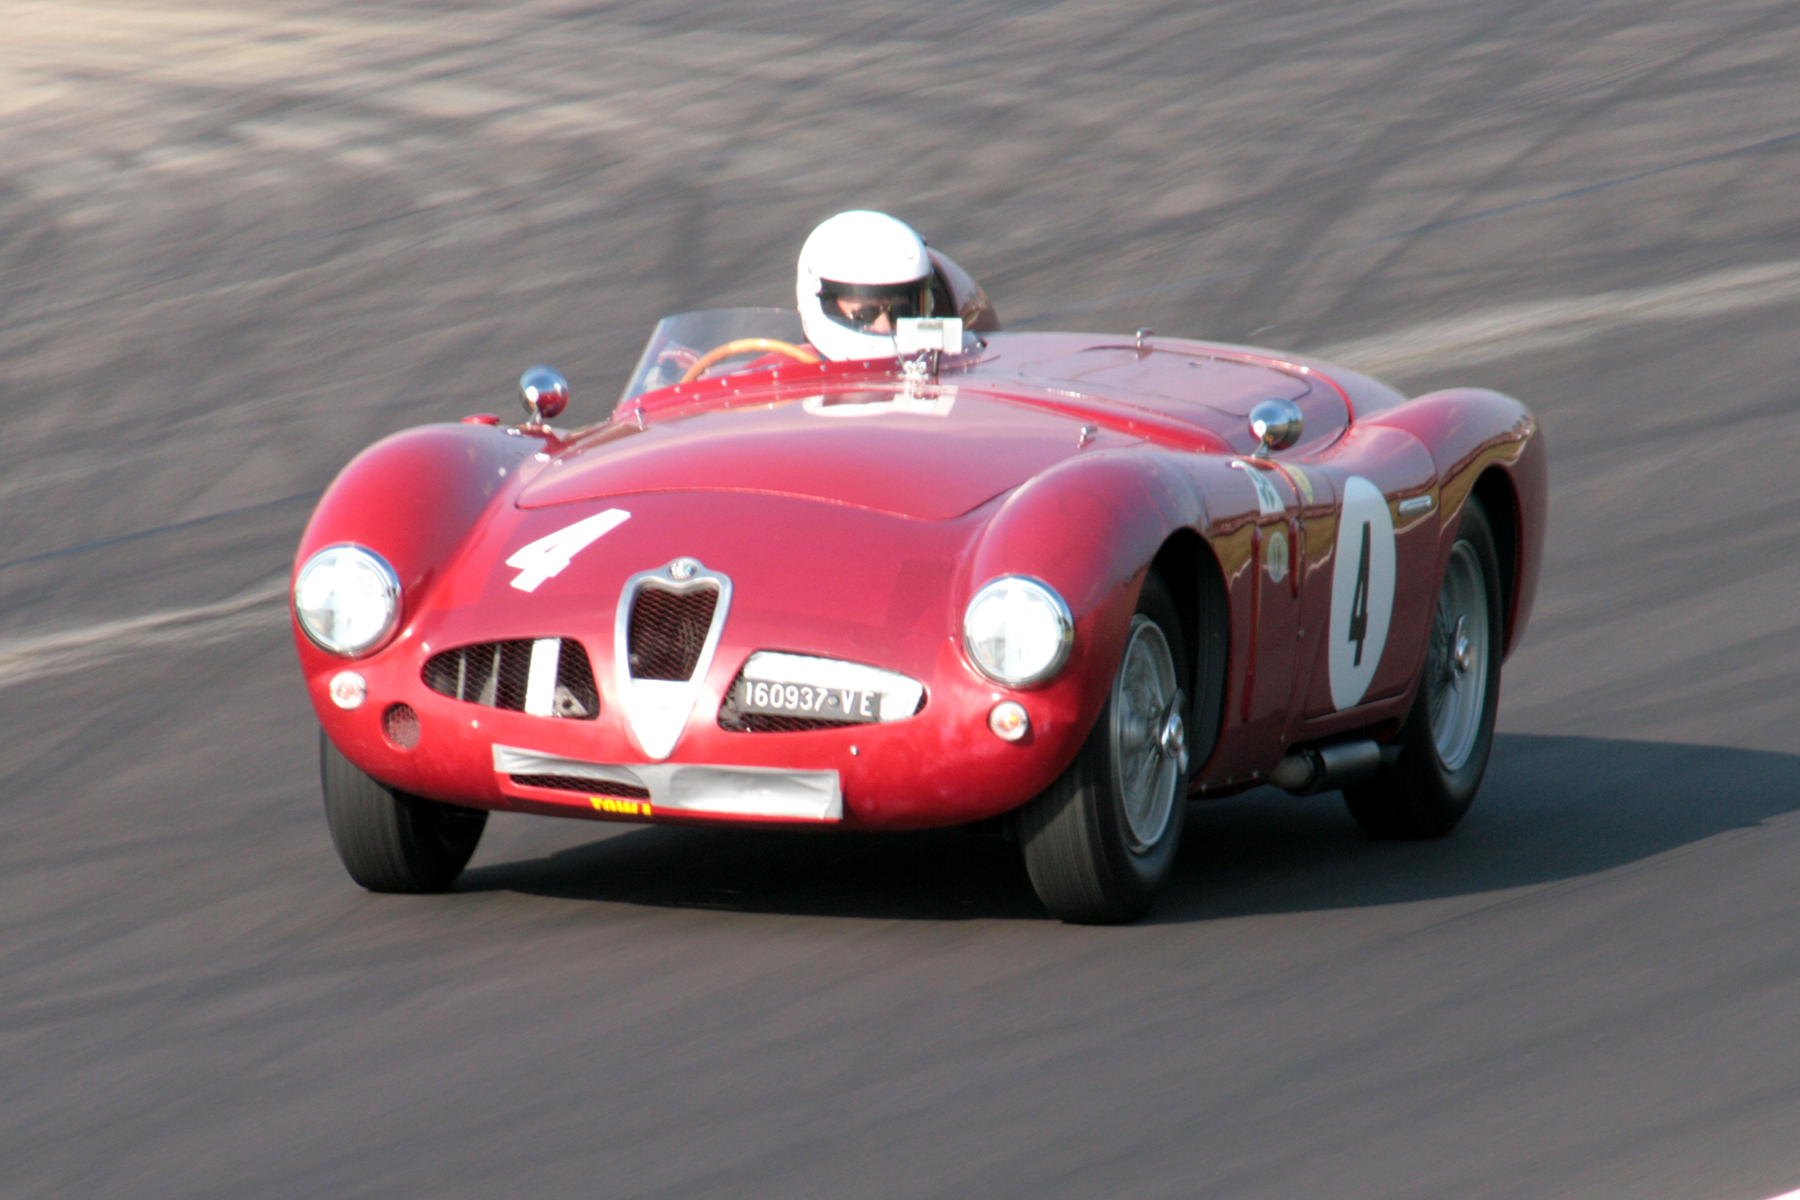 Still showing signs of its Goodwood Revival contretemps is the Alfa Romeo Disco Volante of Chris Mann. It looks as though Chris is looking down into the cockpit rather than at his mirror! He finished 24th.                            Photo - John Turner